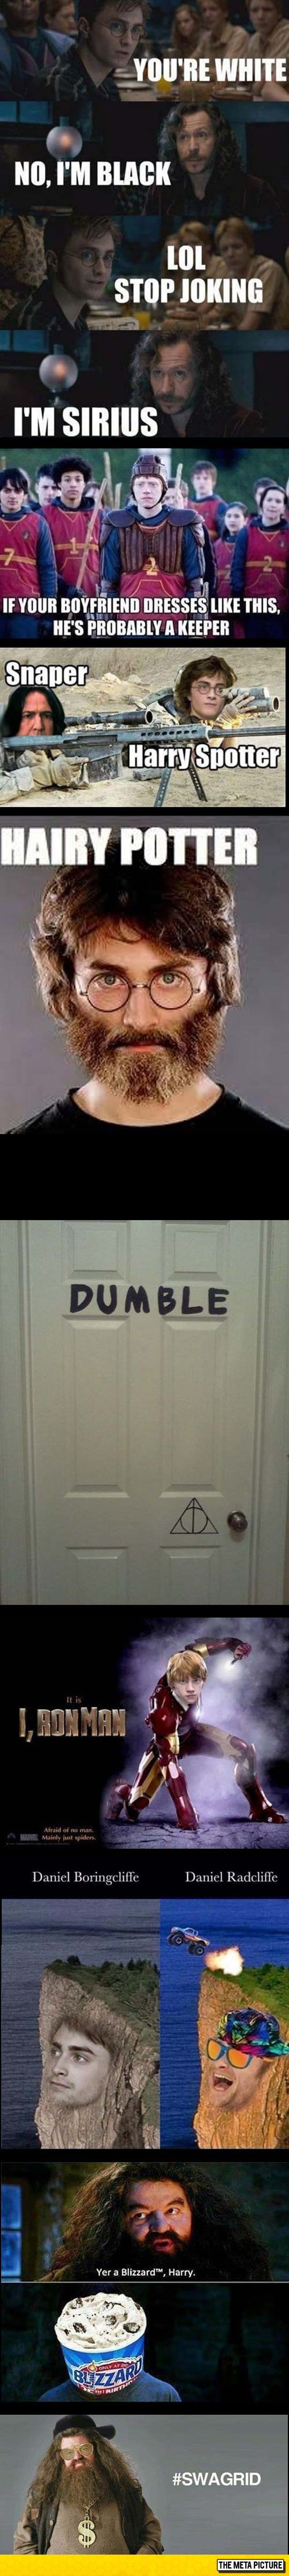 Harry Potter Puns - I didn't laugh until the last one.  You may have to follow it back to Metapicture to see it, tho.